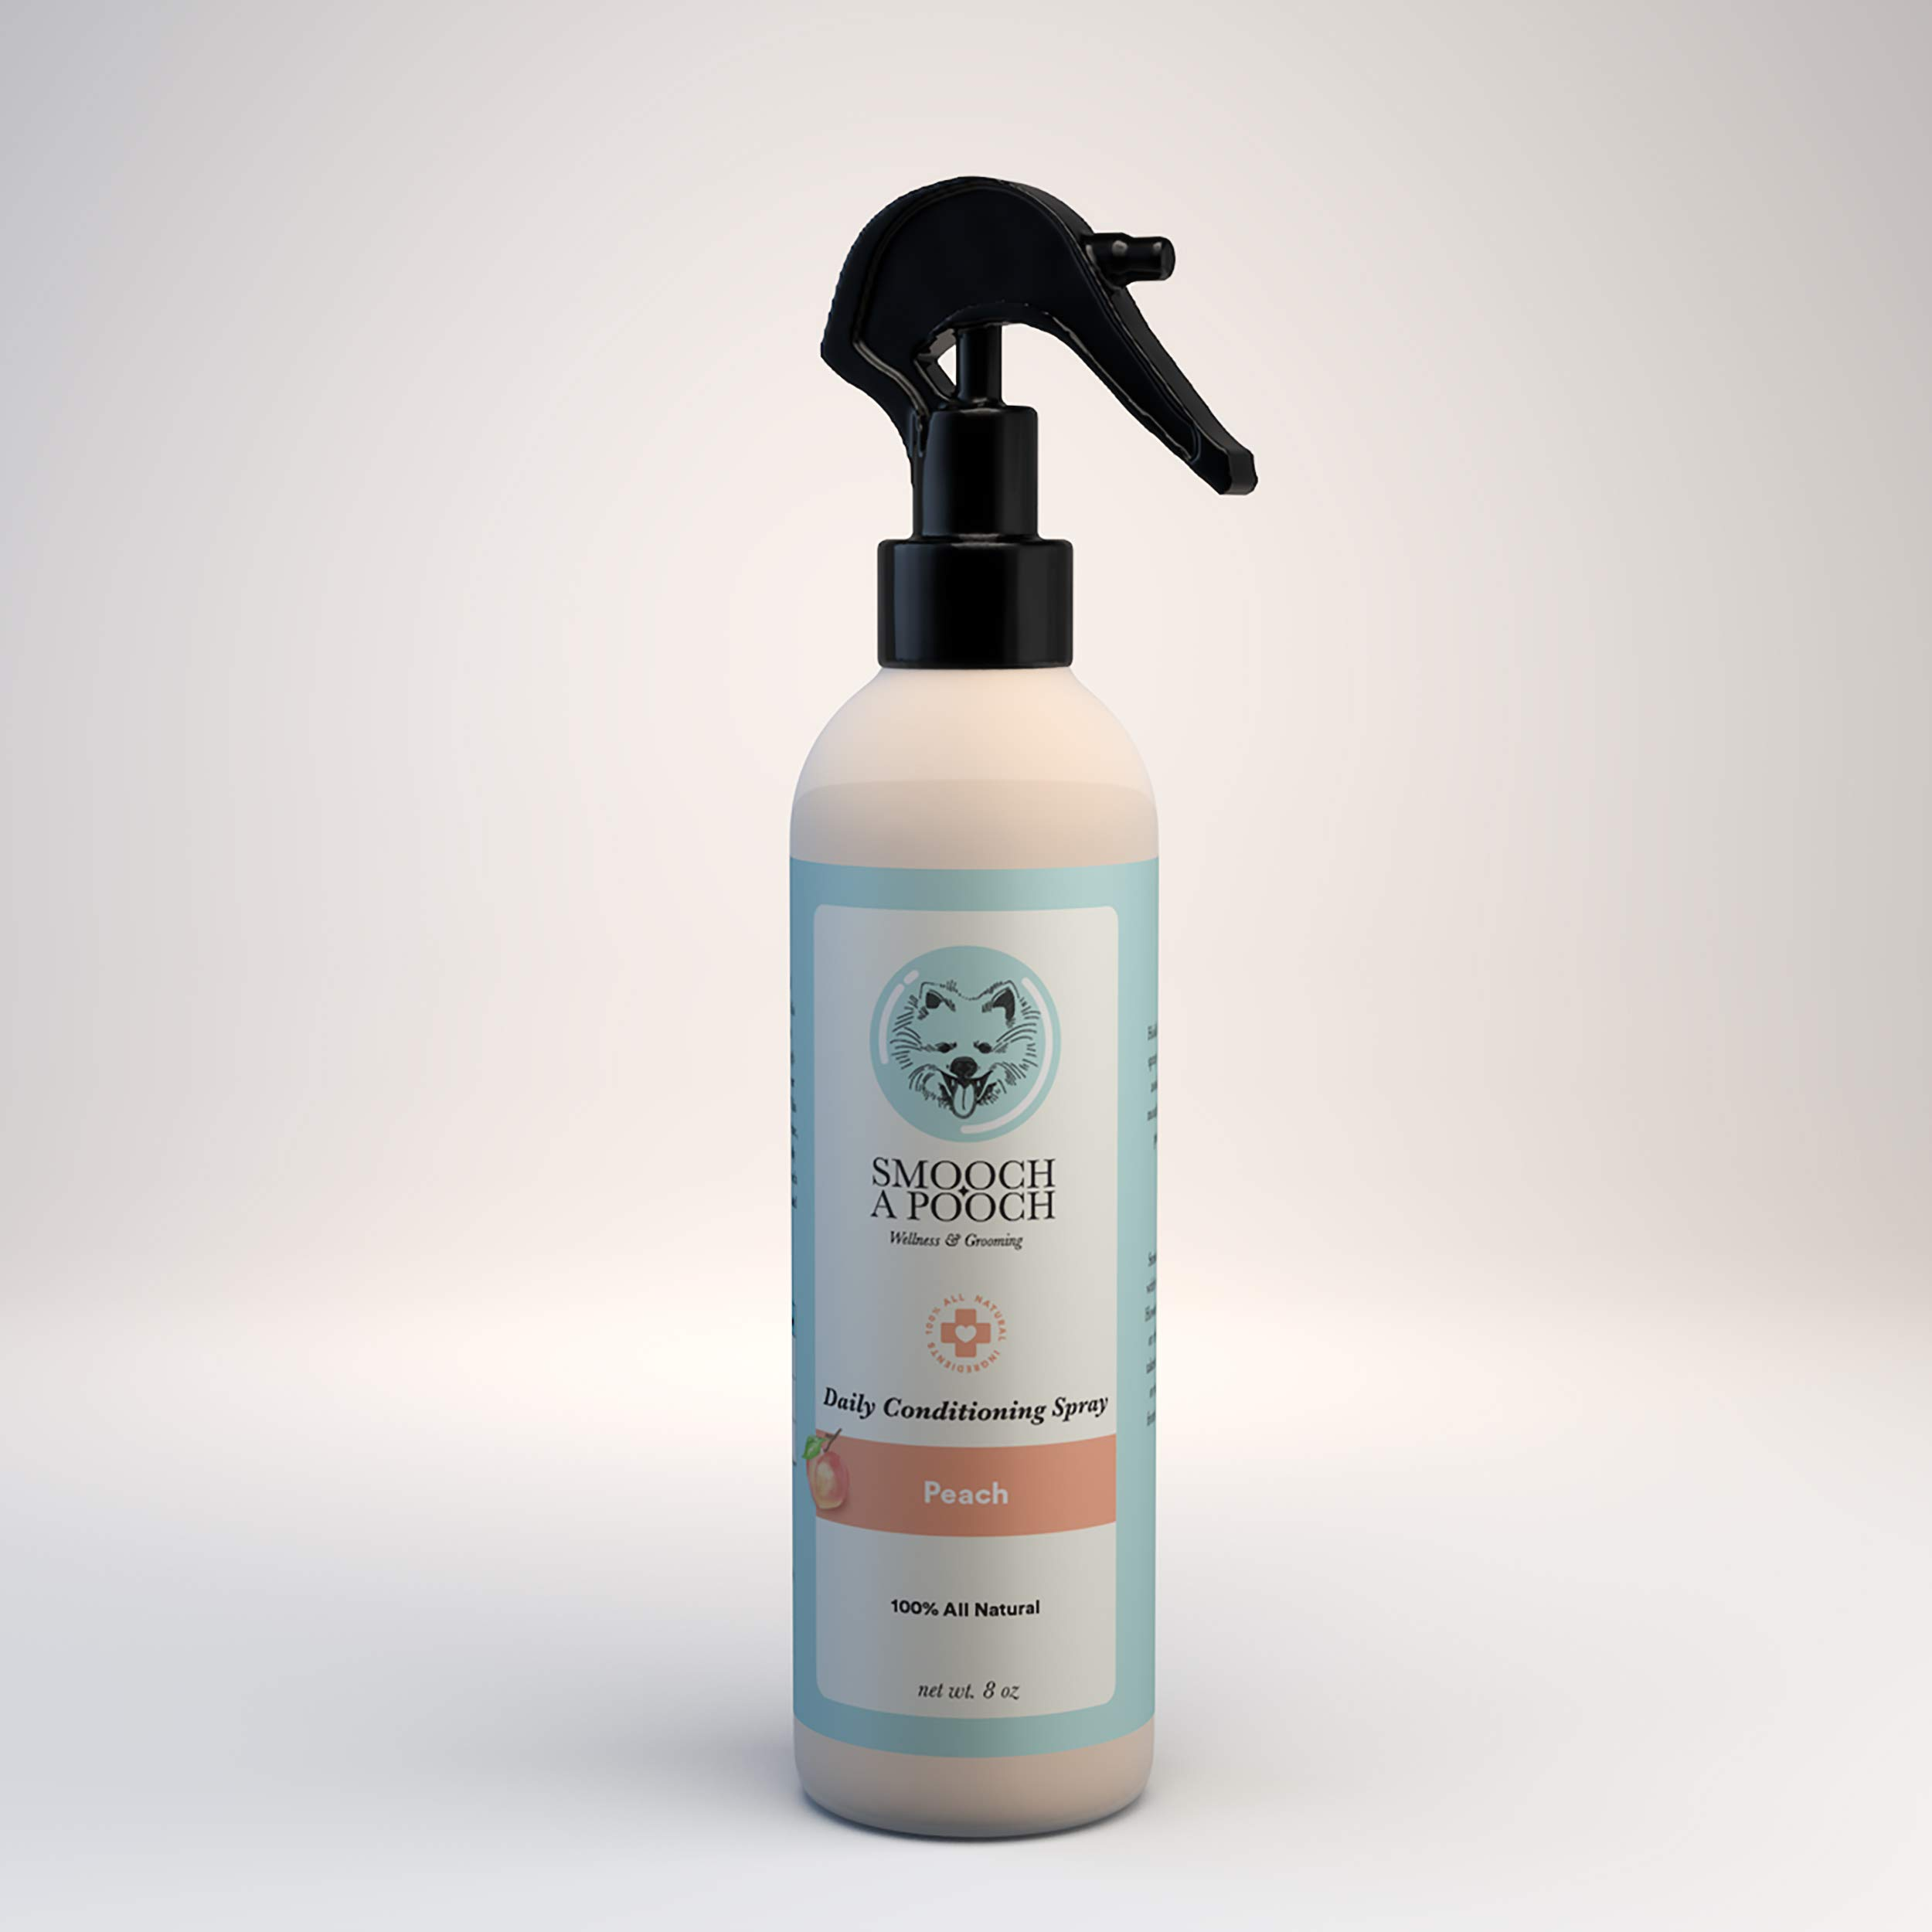 Smooch A Pooch All-Natural Daily Conditioning Spray | Large 8 oz Peach Feminine Scent